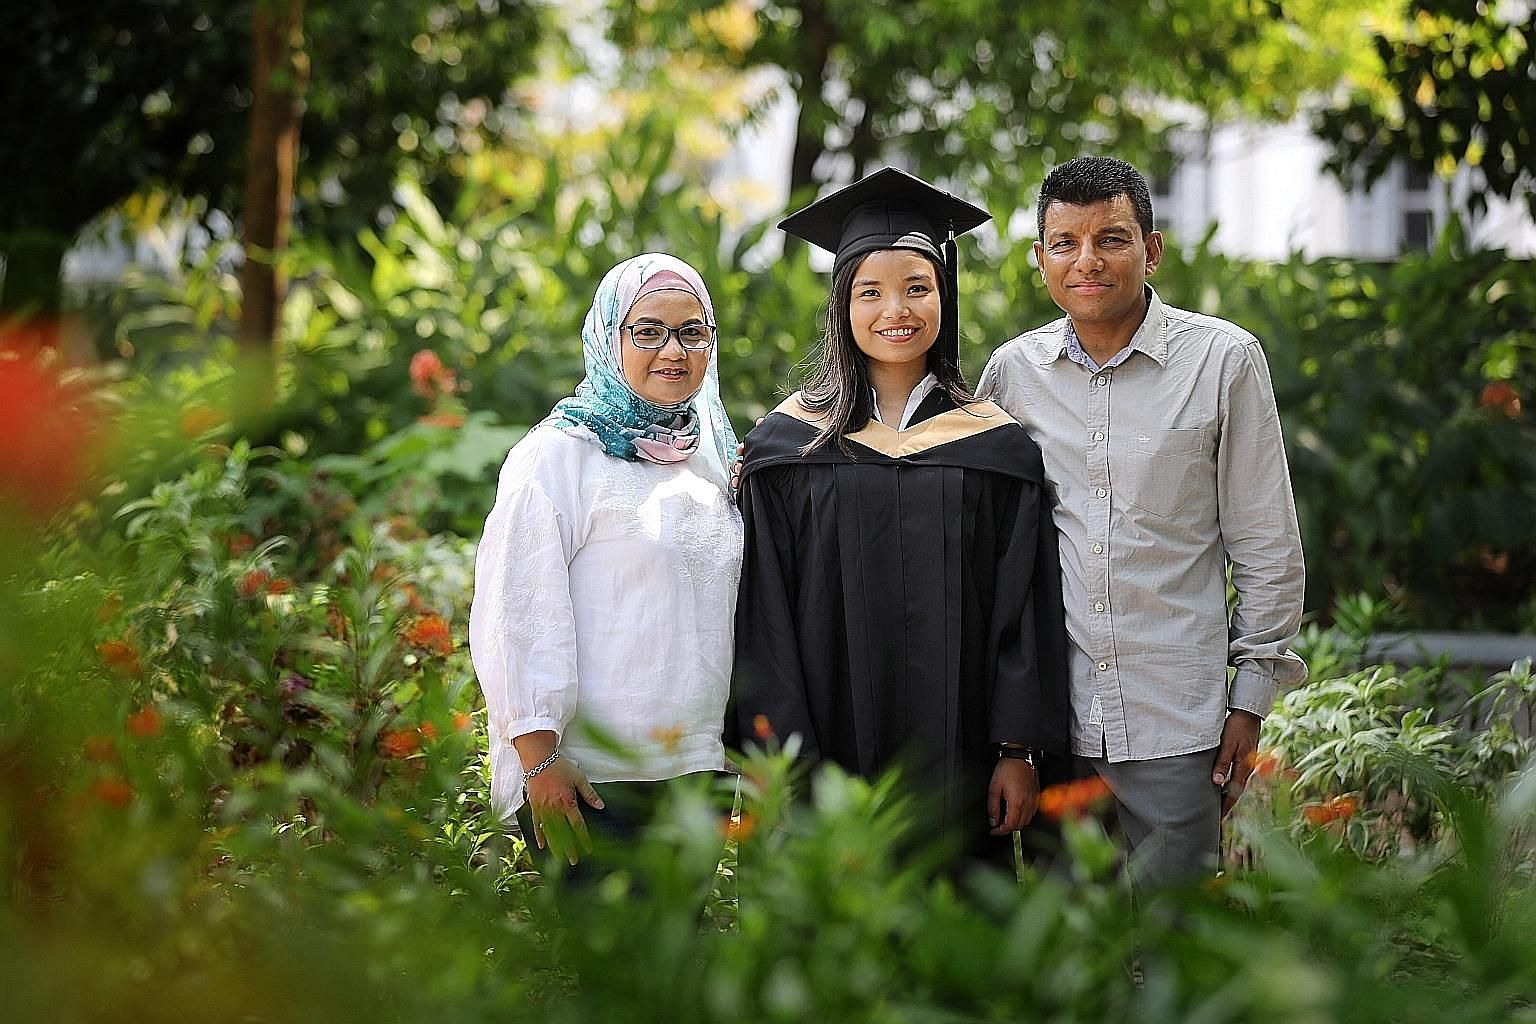 Singapore Management University graduate Farah Abdul Malik with her parents, Madam Fatimah Alwi and Mr Abdul Malik Rahman Shah. Ms Farah is currently enrolled in a two-year fast-track Master of Philosophy in Psychology programme at the university.